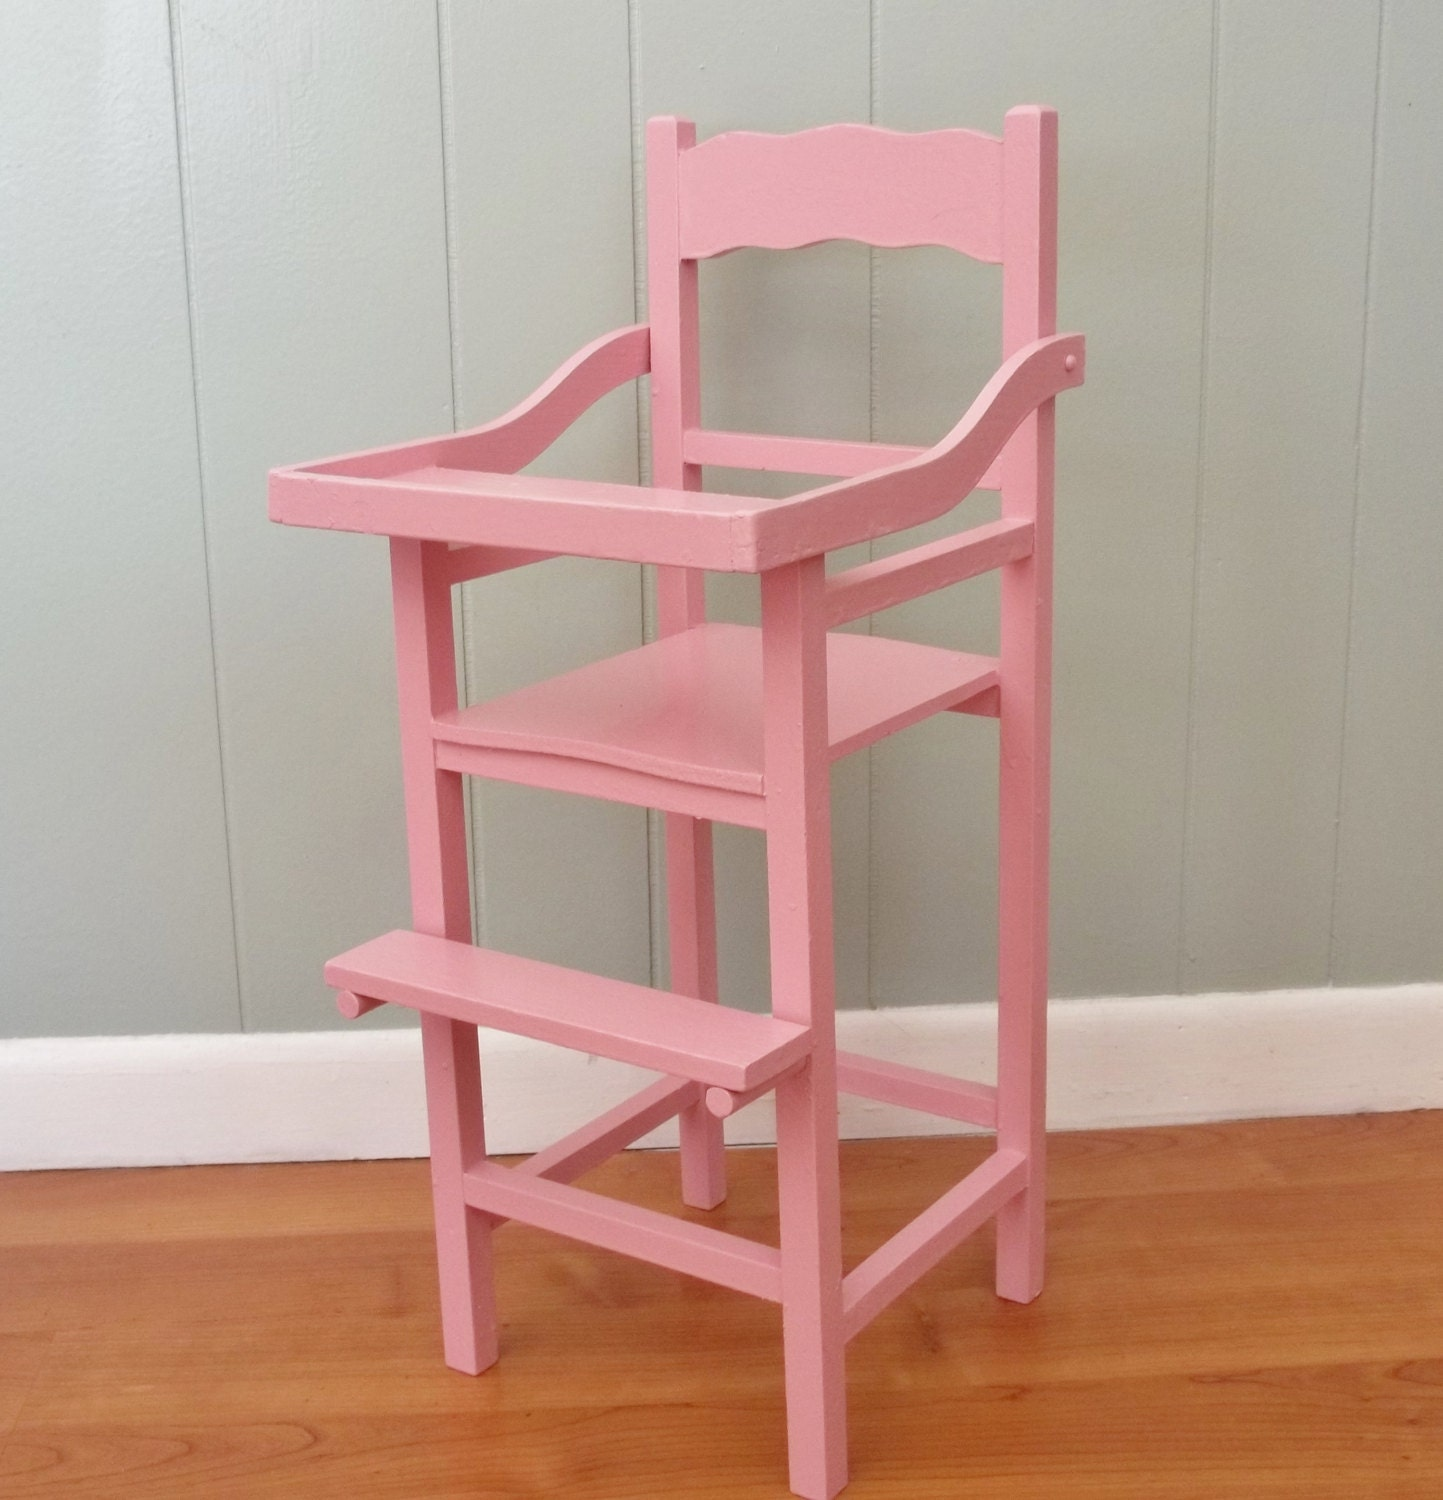 Vintage wooden high chair - Superb Img Of Wooden Wood Doll Highchair Is An Upcycled Vintage By Graceyournest With 9e2d3a